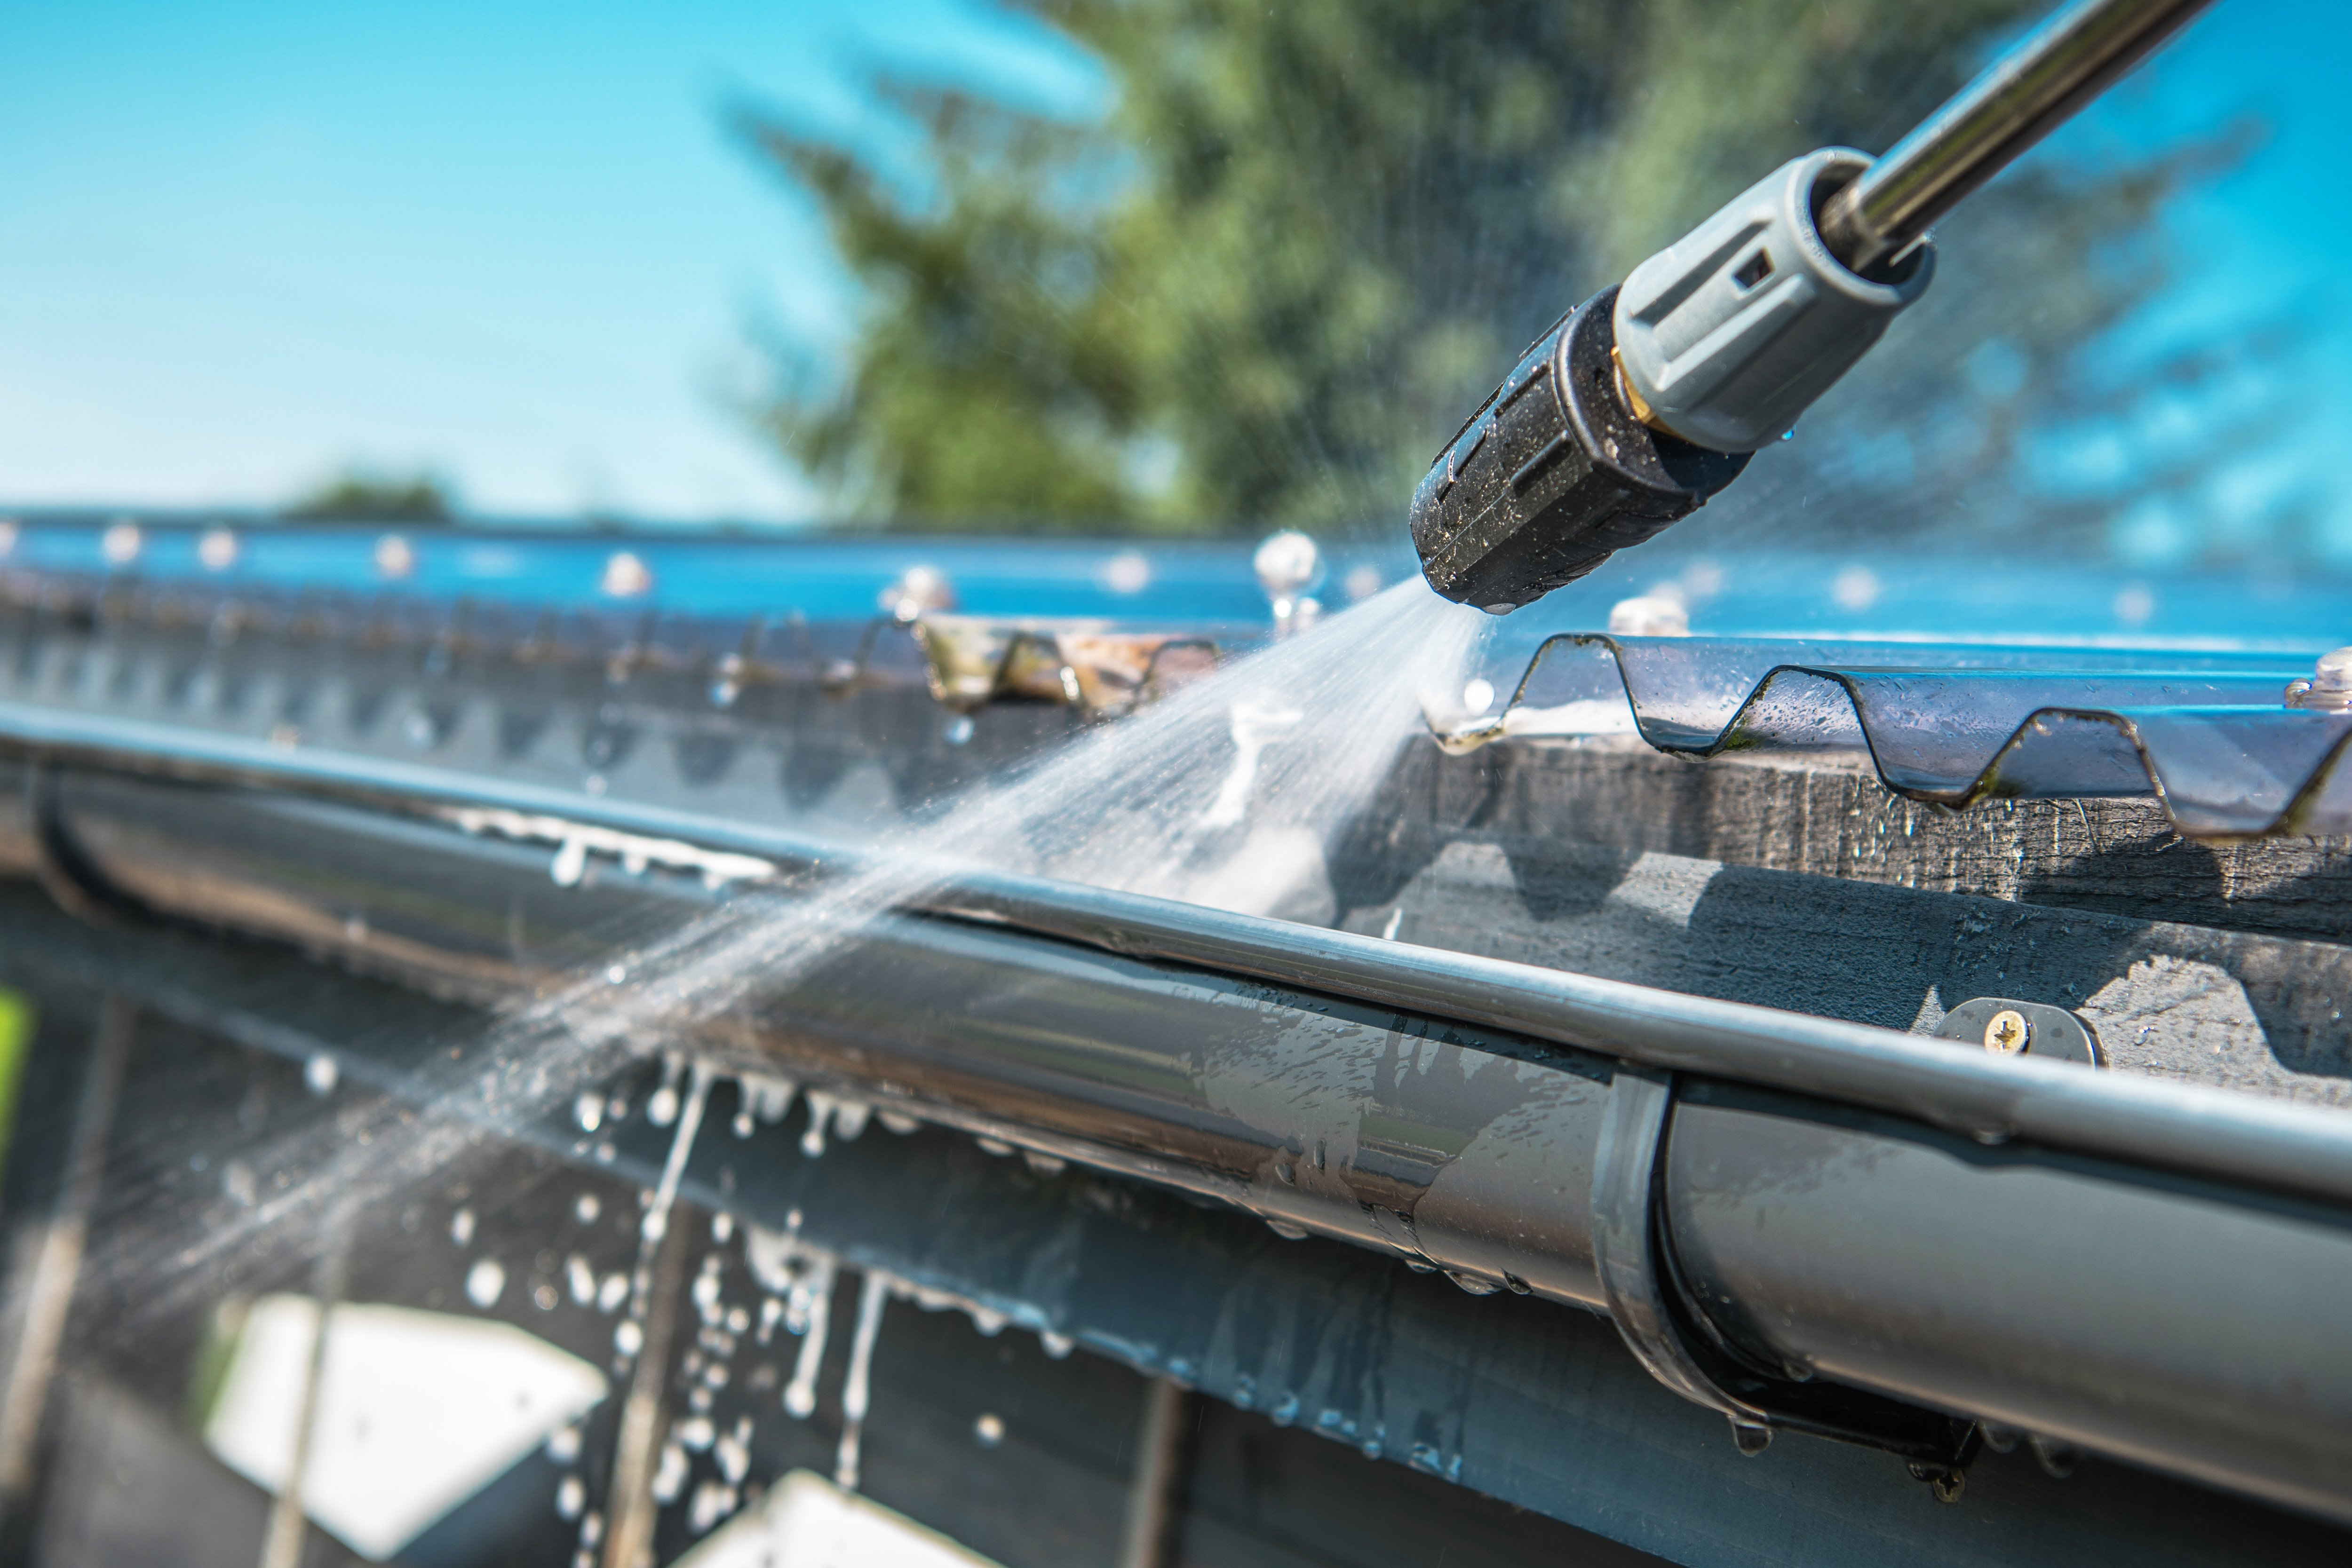 Professional power washing services for gutters